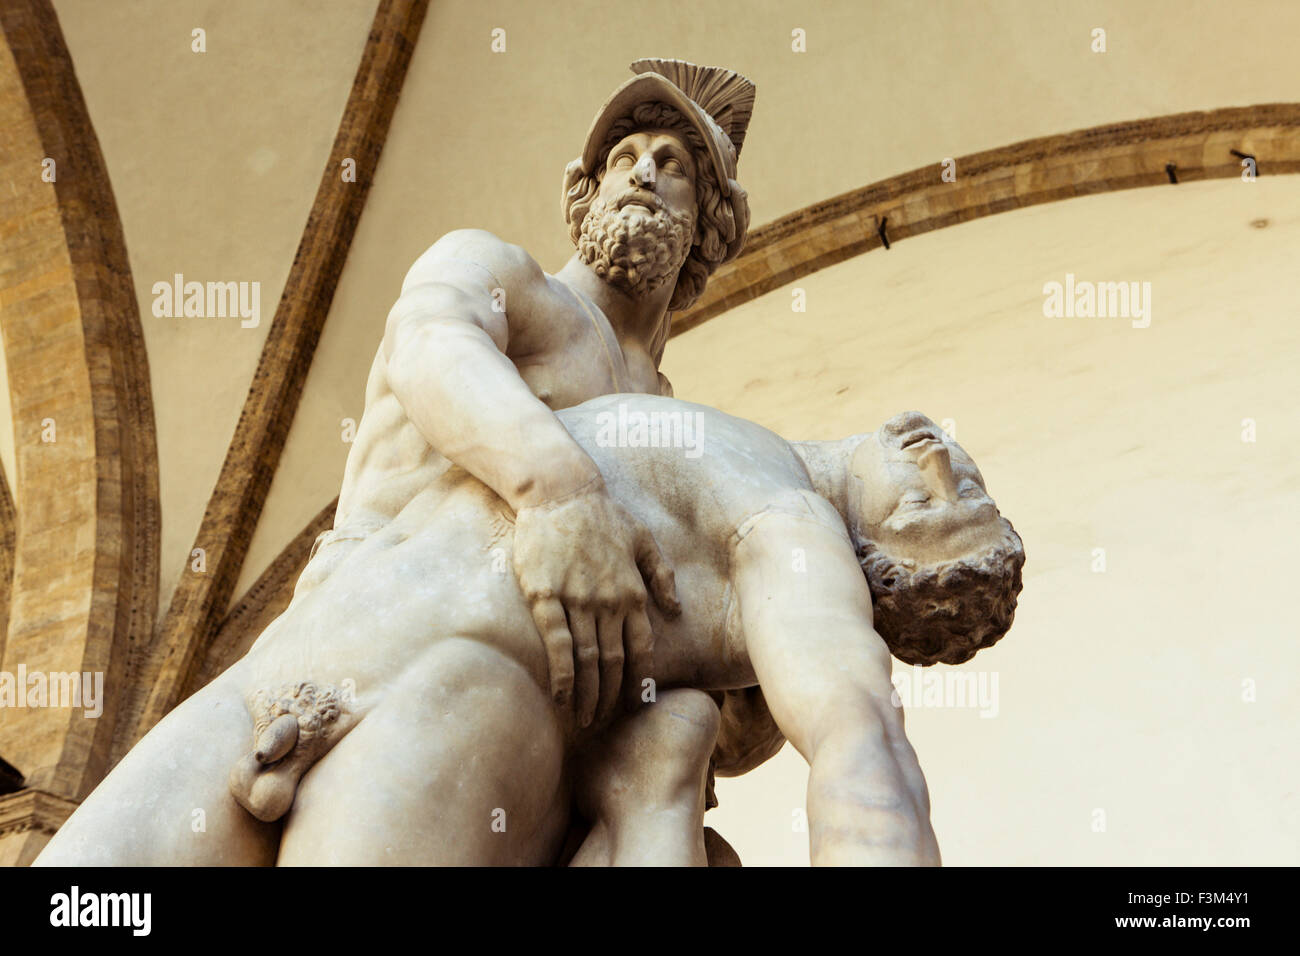 Statues in the Loggia Dei Lanzi, in Florence, Tuscany, Italy - Stock Image